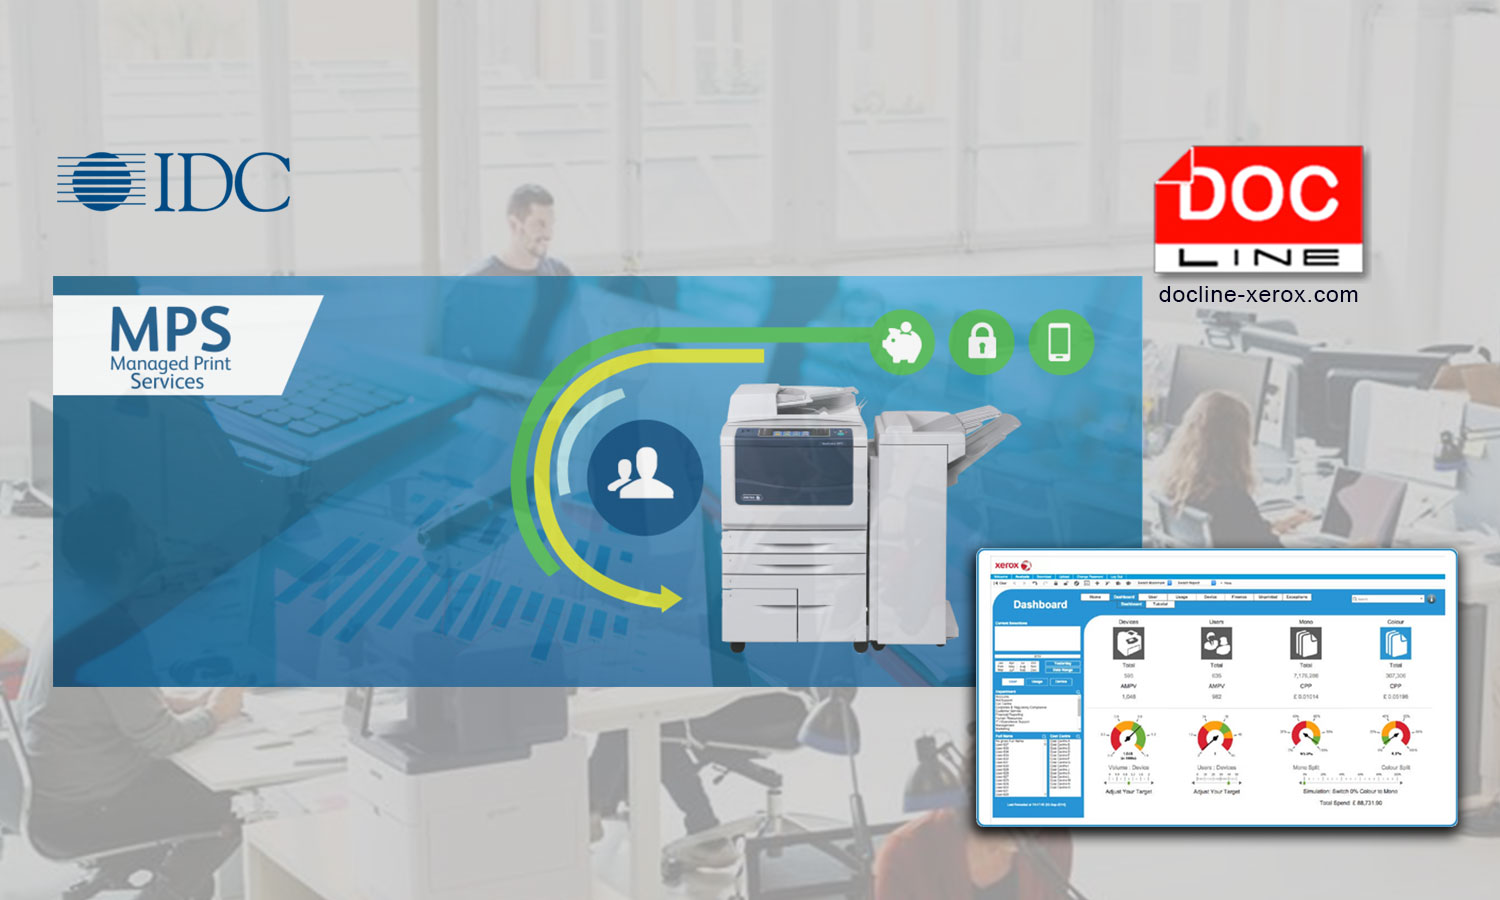 xerox docline solutions-IDC-2017-docline-xerox-managed-print-services